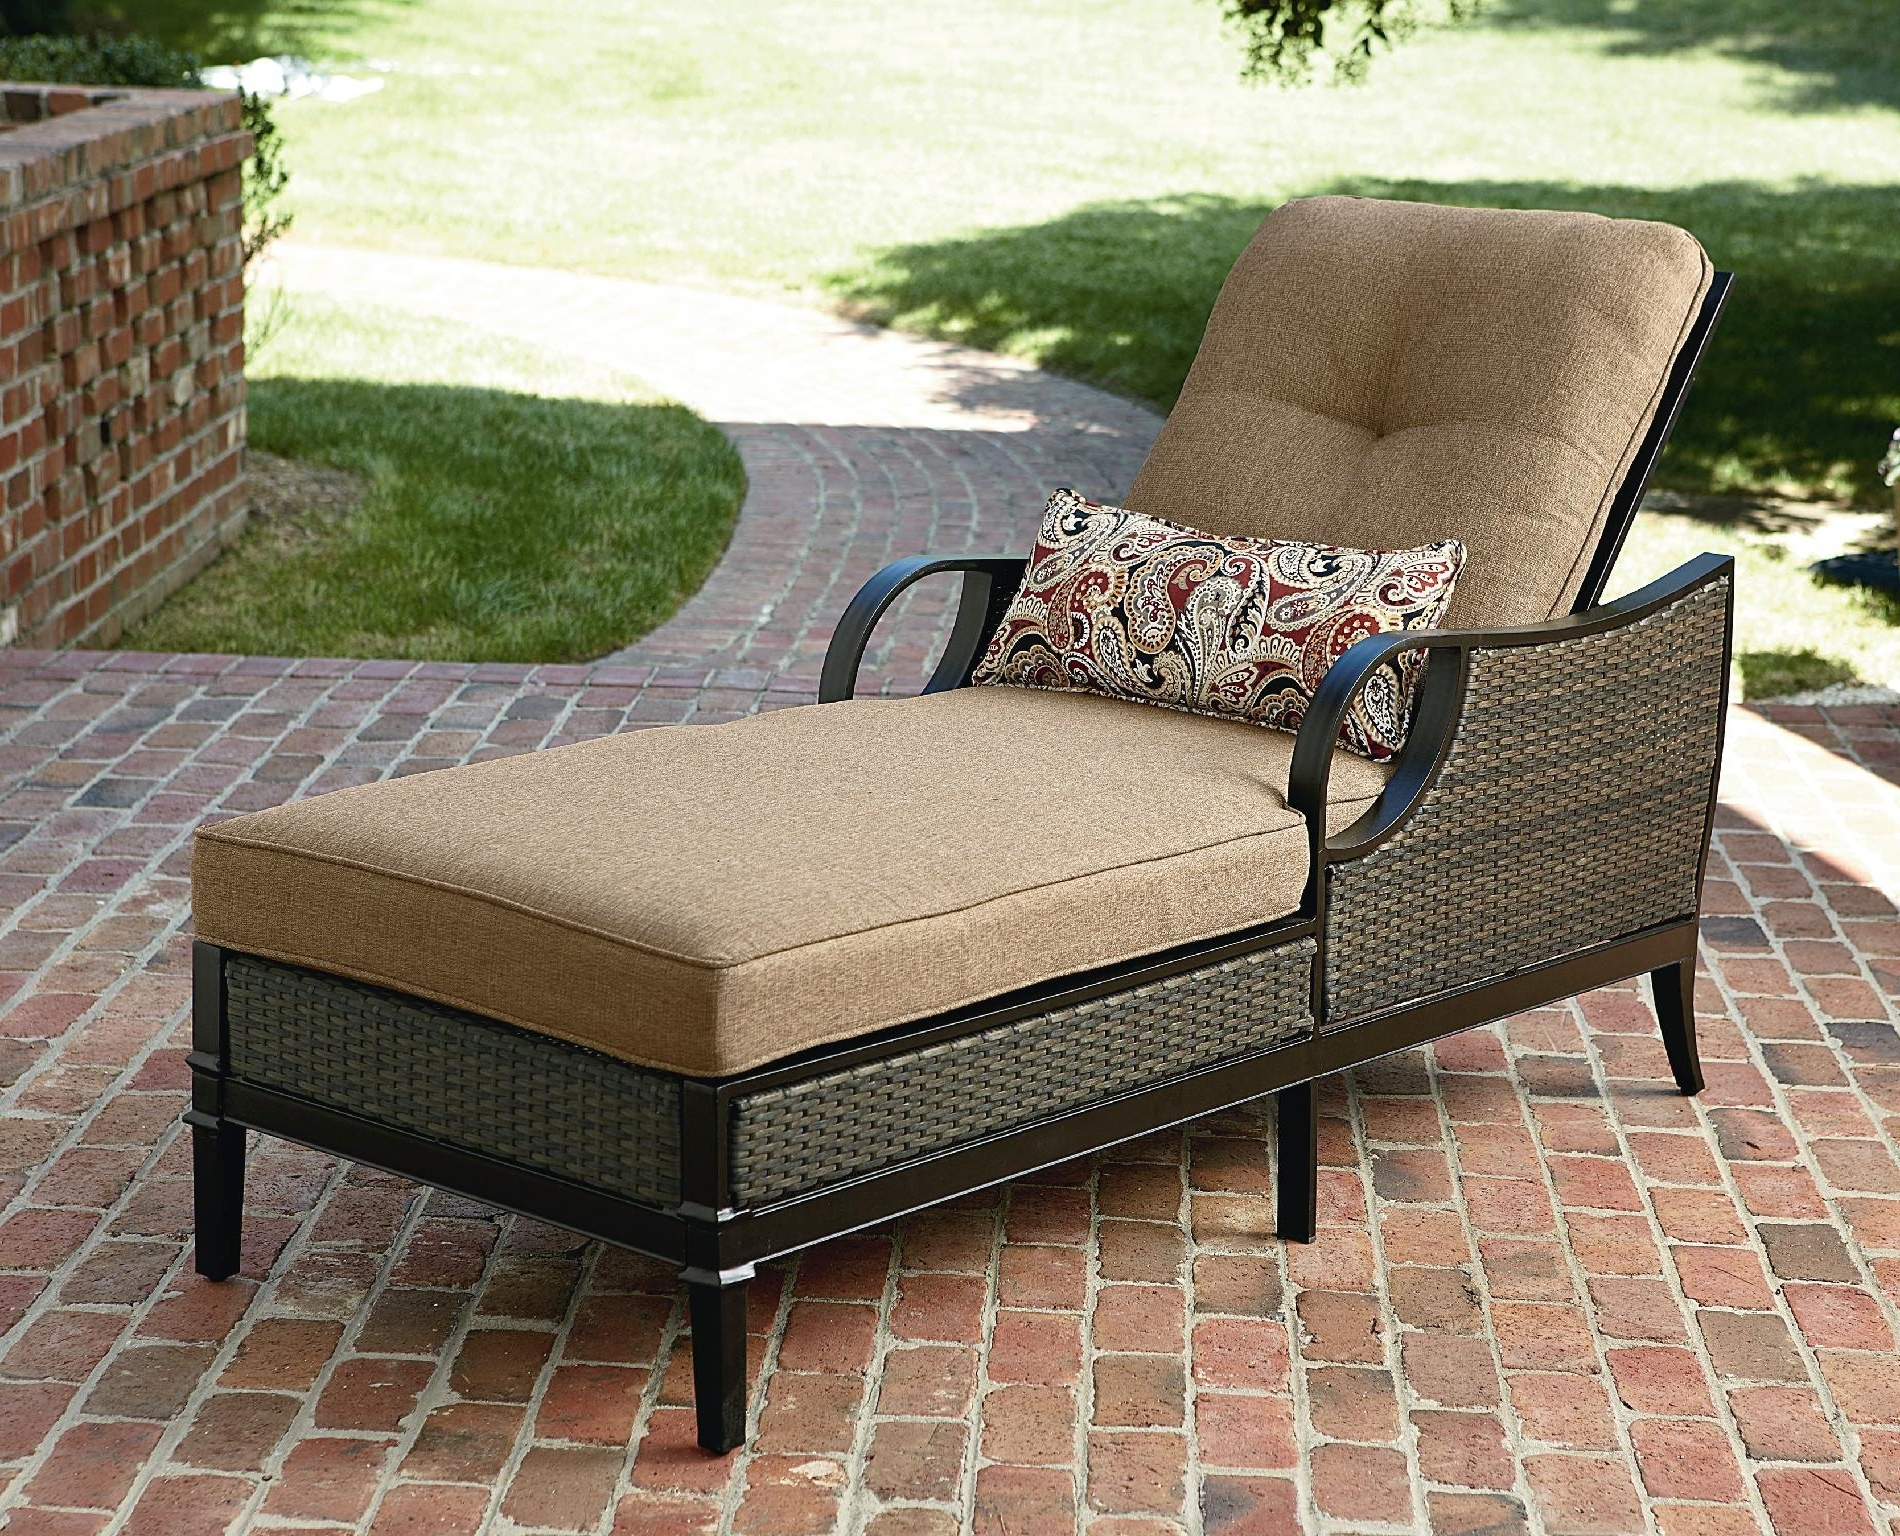 Most Up To Date Chaise Lounge Chairs For Patio • Lounge Chairs Ideas Pertaining To Cheap Outdoor Chaise Lounge Chairs (View 7 of 15)